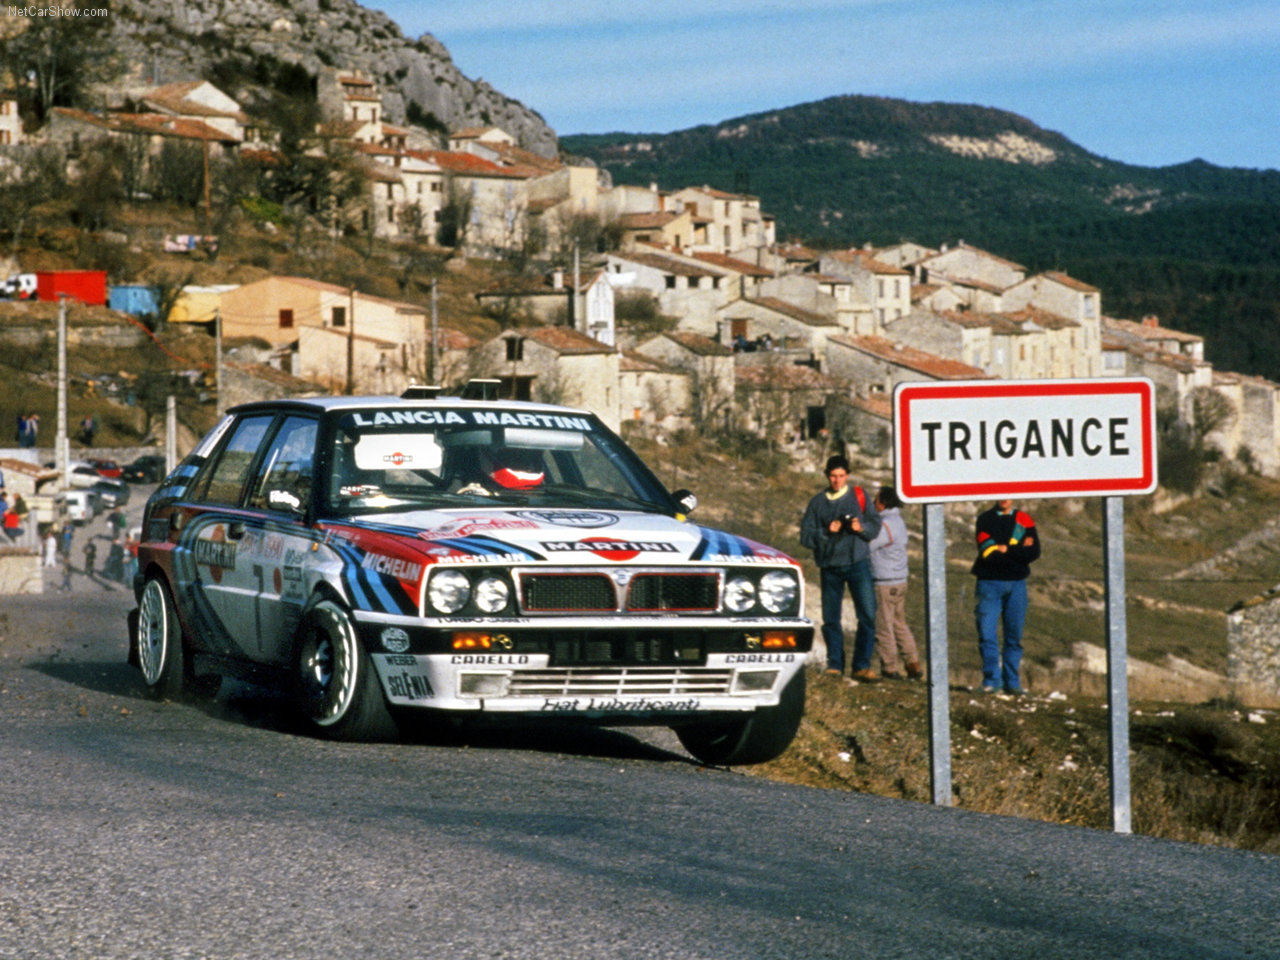 Lancia Delta Integrale 16v rally car